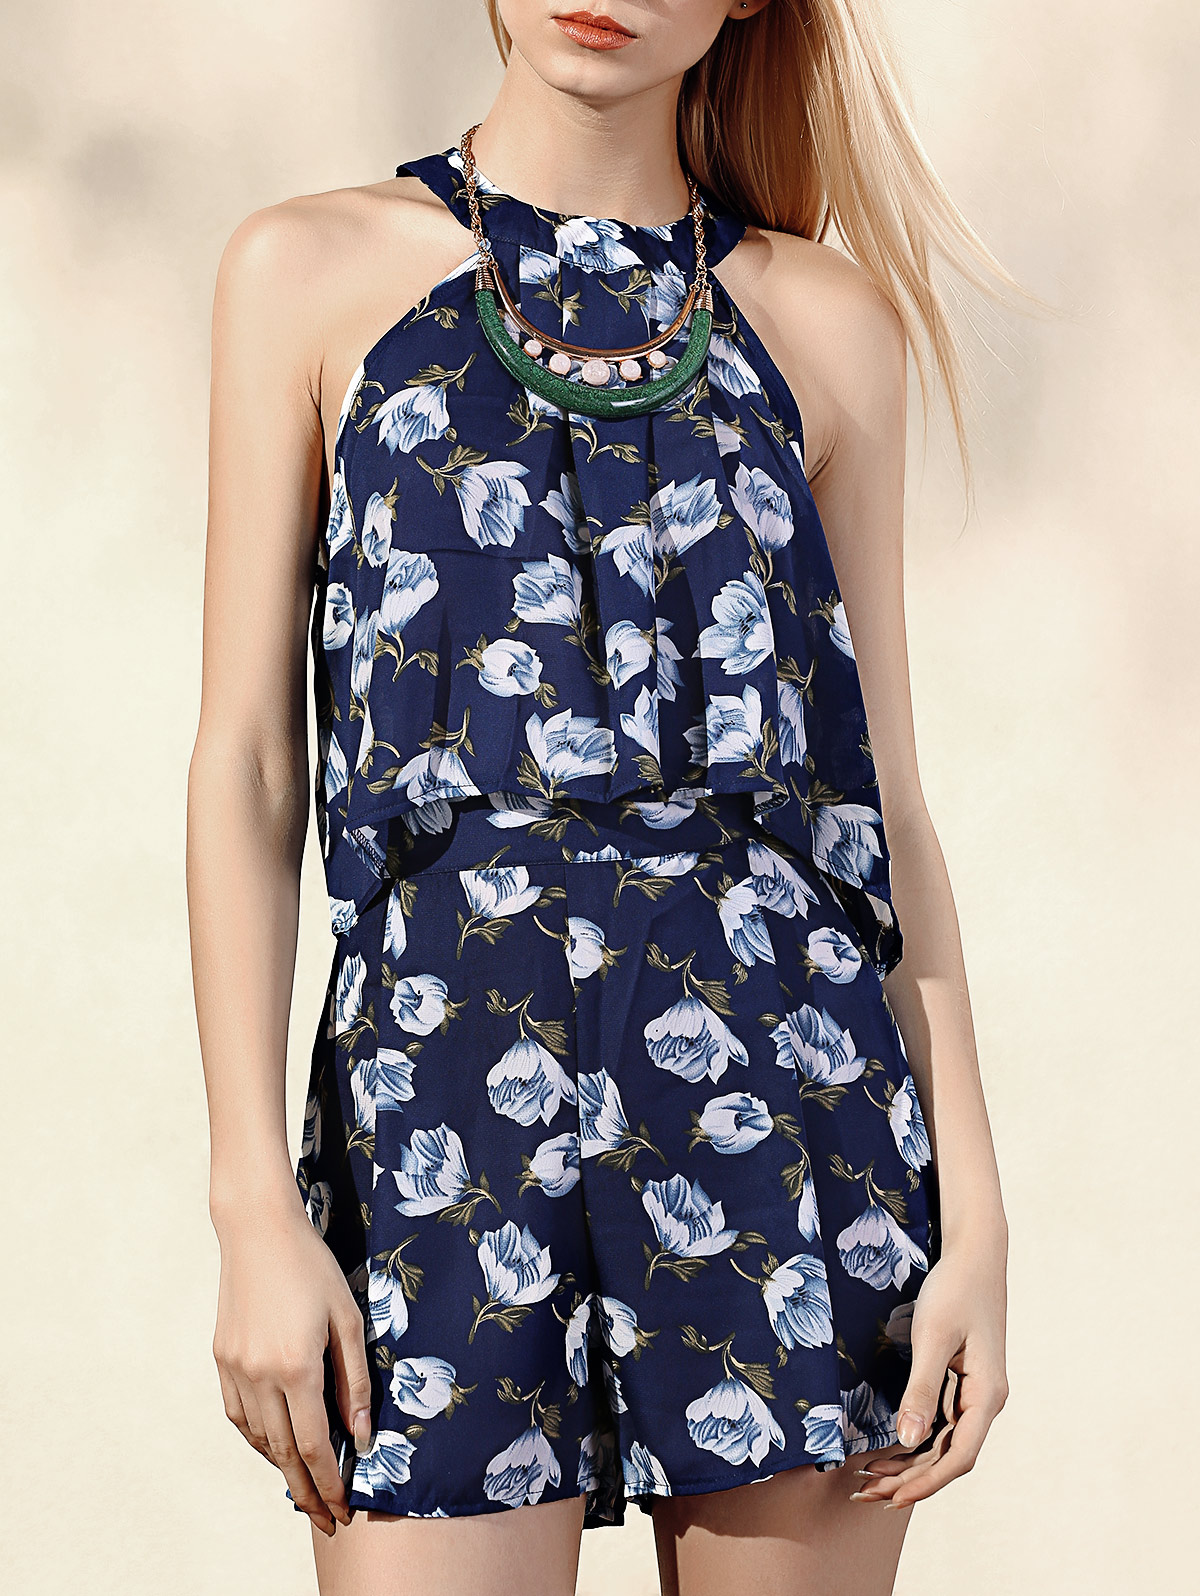 http://www.zaful.com/printed-halter-top-high-waisted-shorts-p_185331.html?lkid=14628